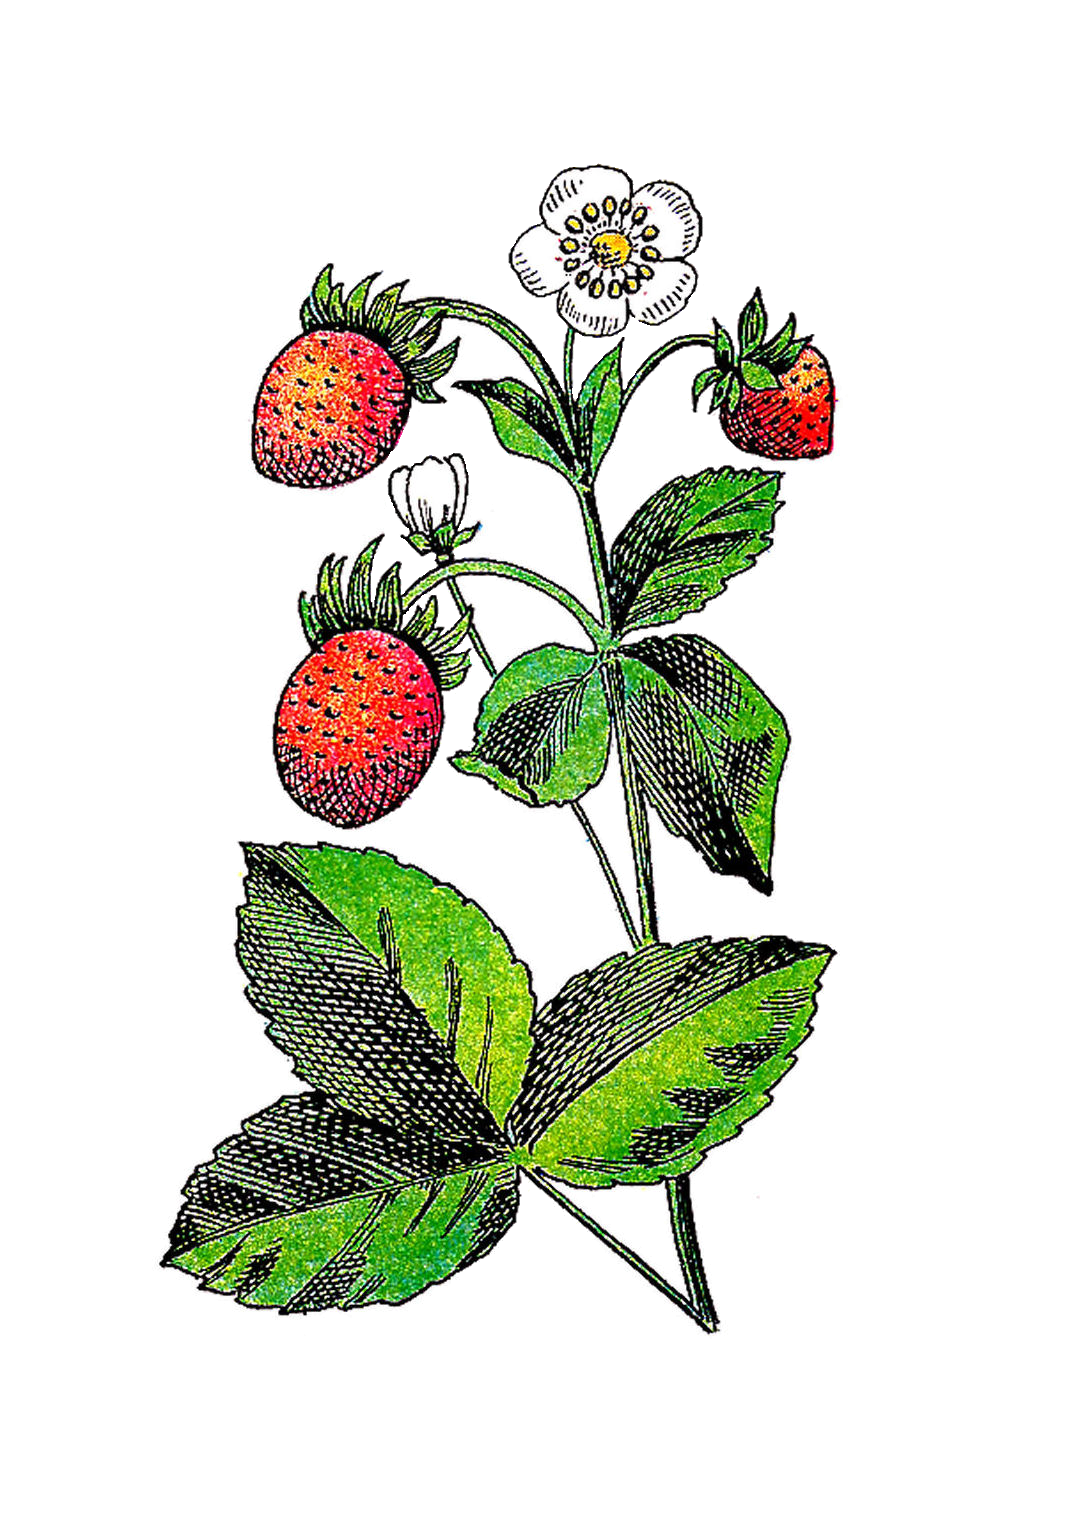 Strawberry flower clipart picture freeuse stock Strawberry Flower Fruit Plant Clip art - Flower Berries Cliparts ... picture freeuse stock